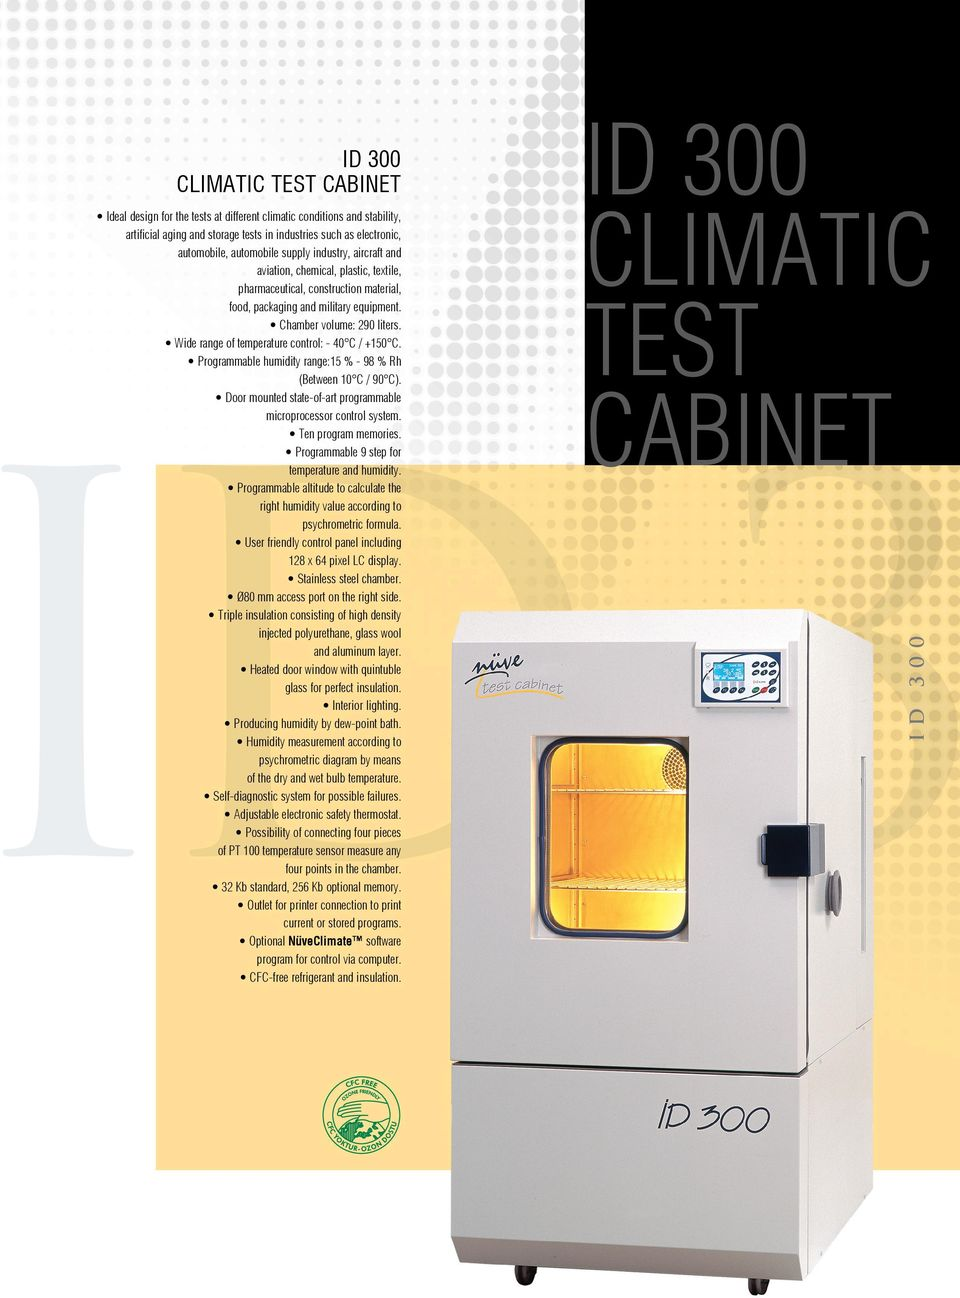 Programmable humidity range:15 % - 98 % Rh (Between 10 C / 90 C). Door mounted state-of-art programmable microprocessor control system. Ten program memories.